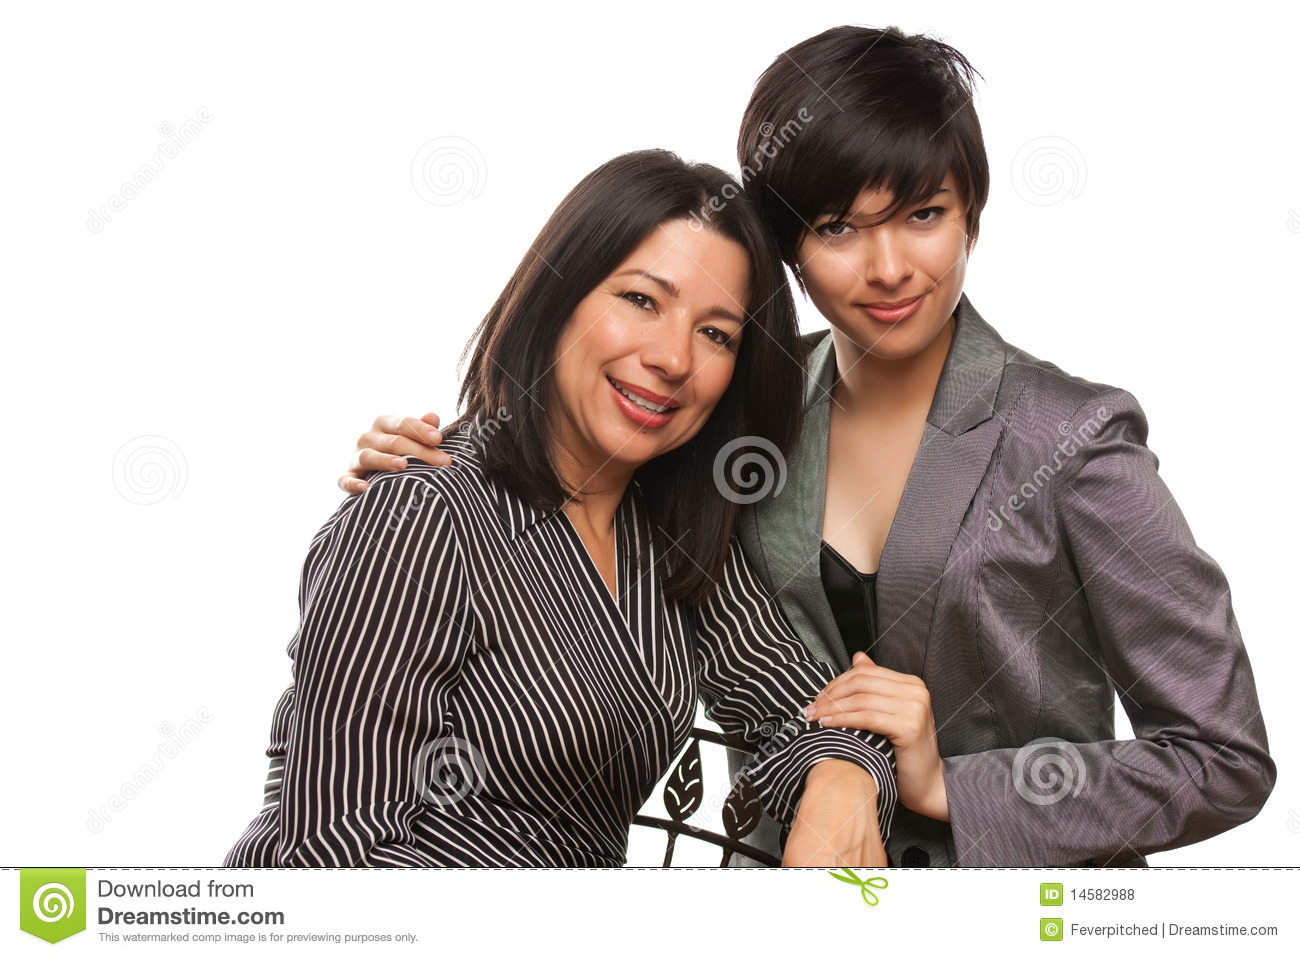 Multiethnic Mother and Daughter Portrait